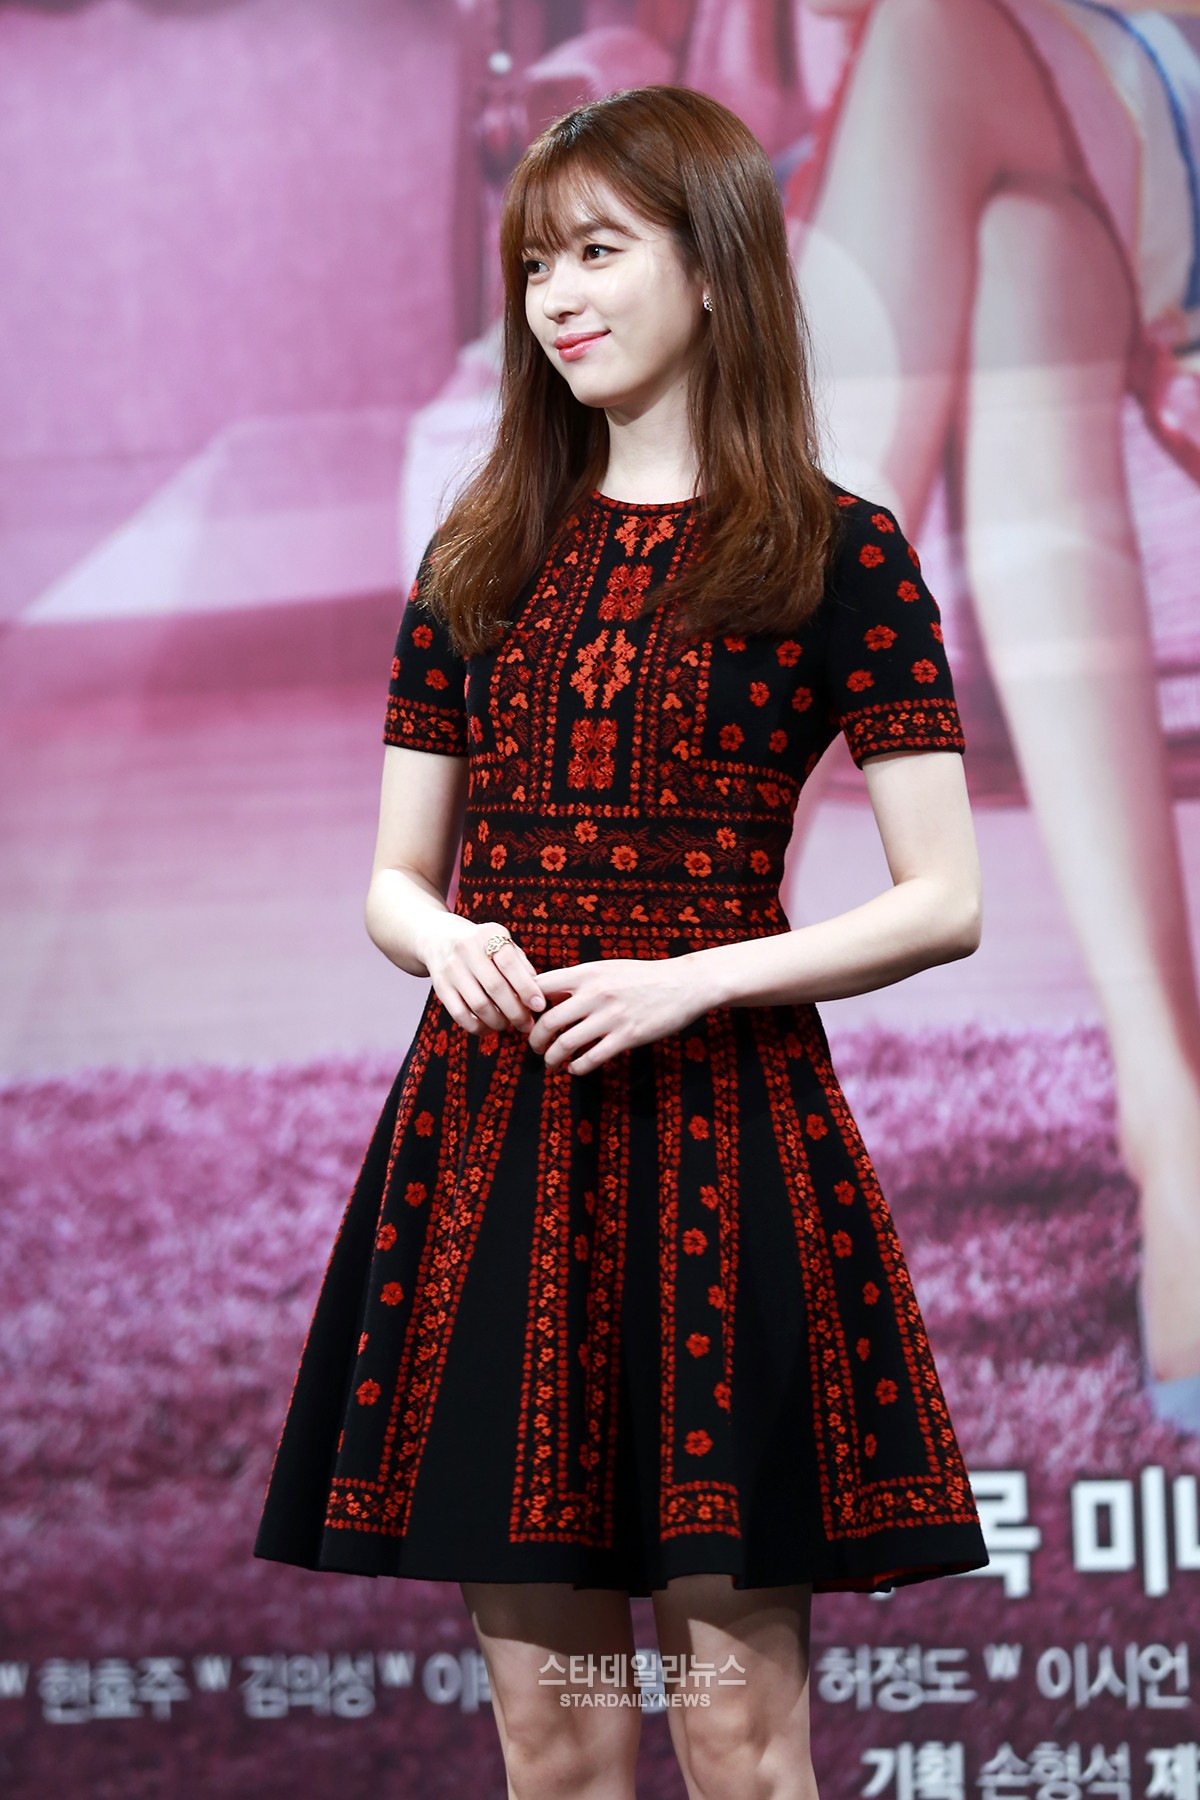 han-hyo-joo-w-press-conference